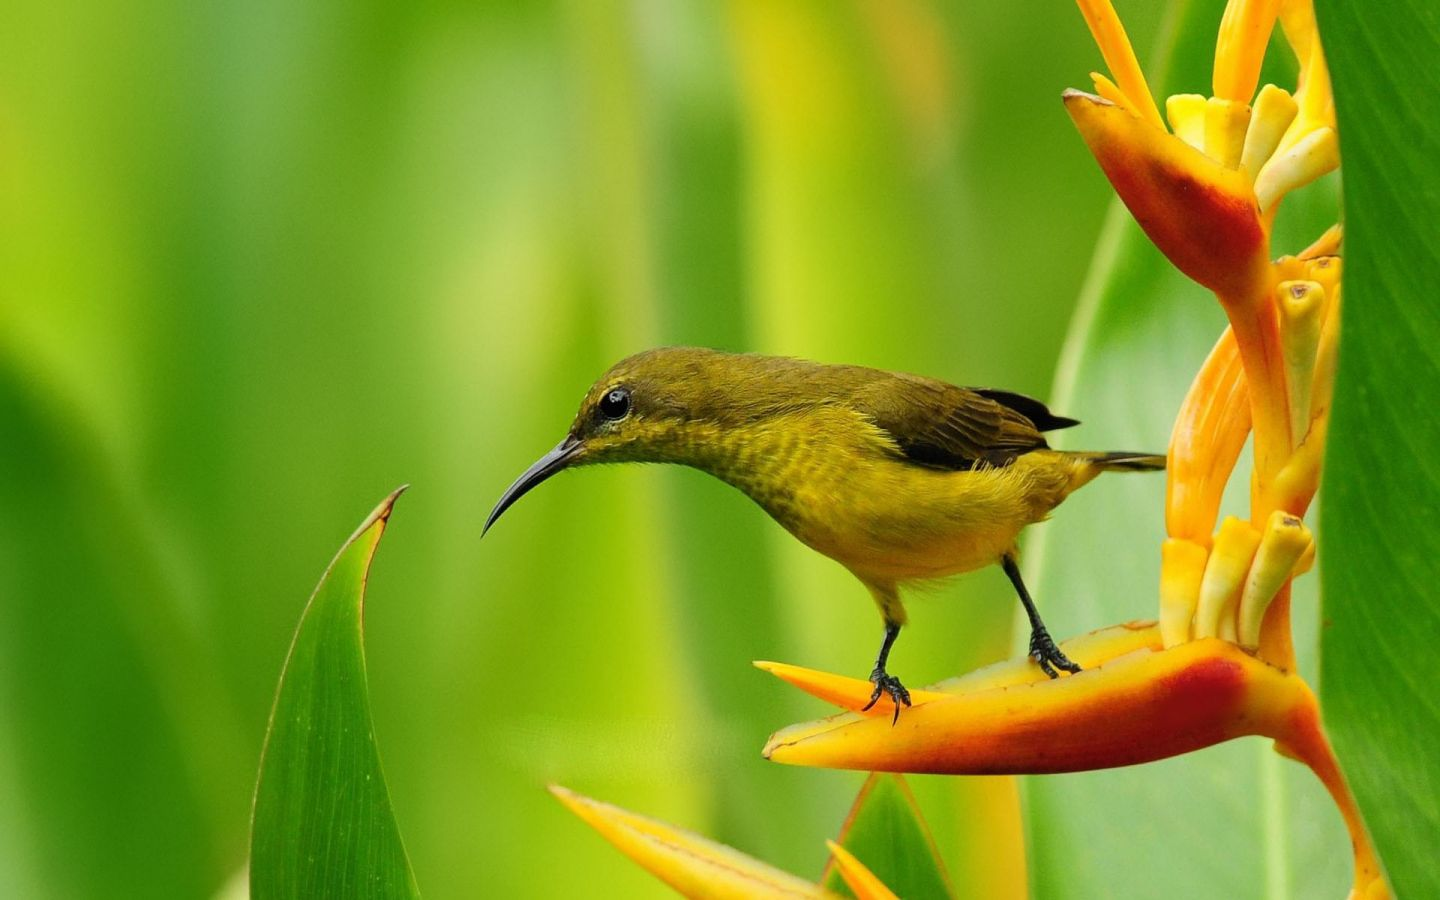 Small bird on bird of paradise flower wallpaper 1440×900